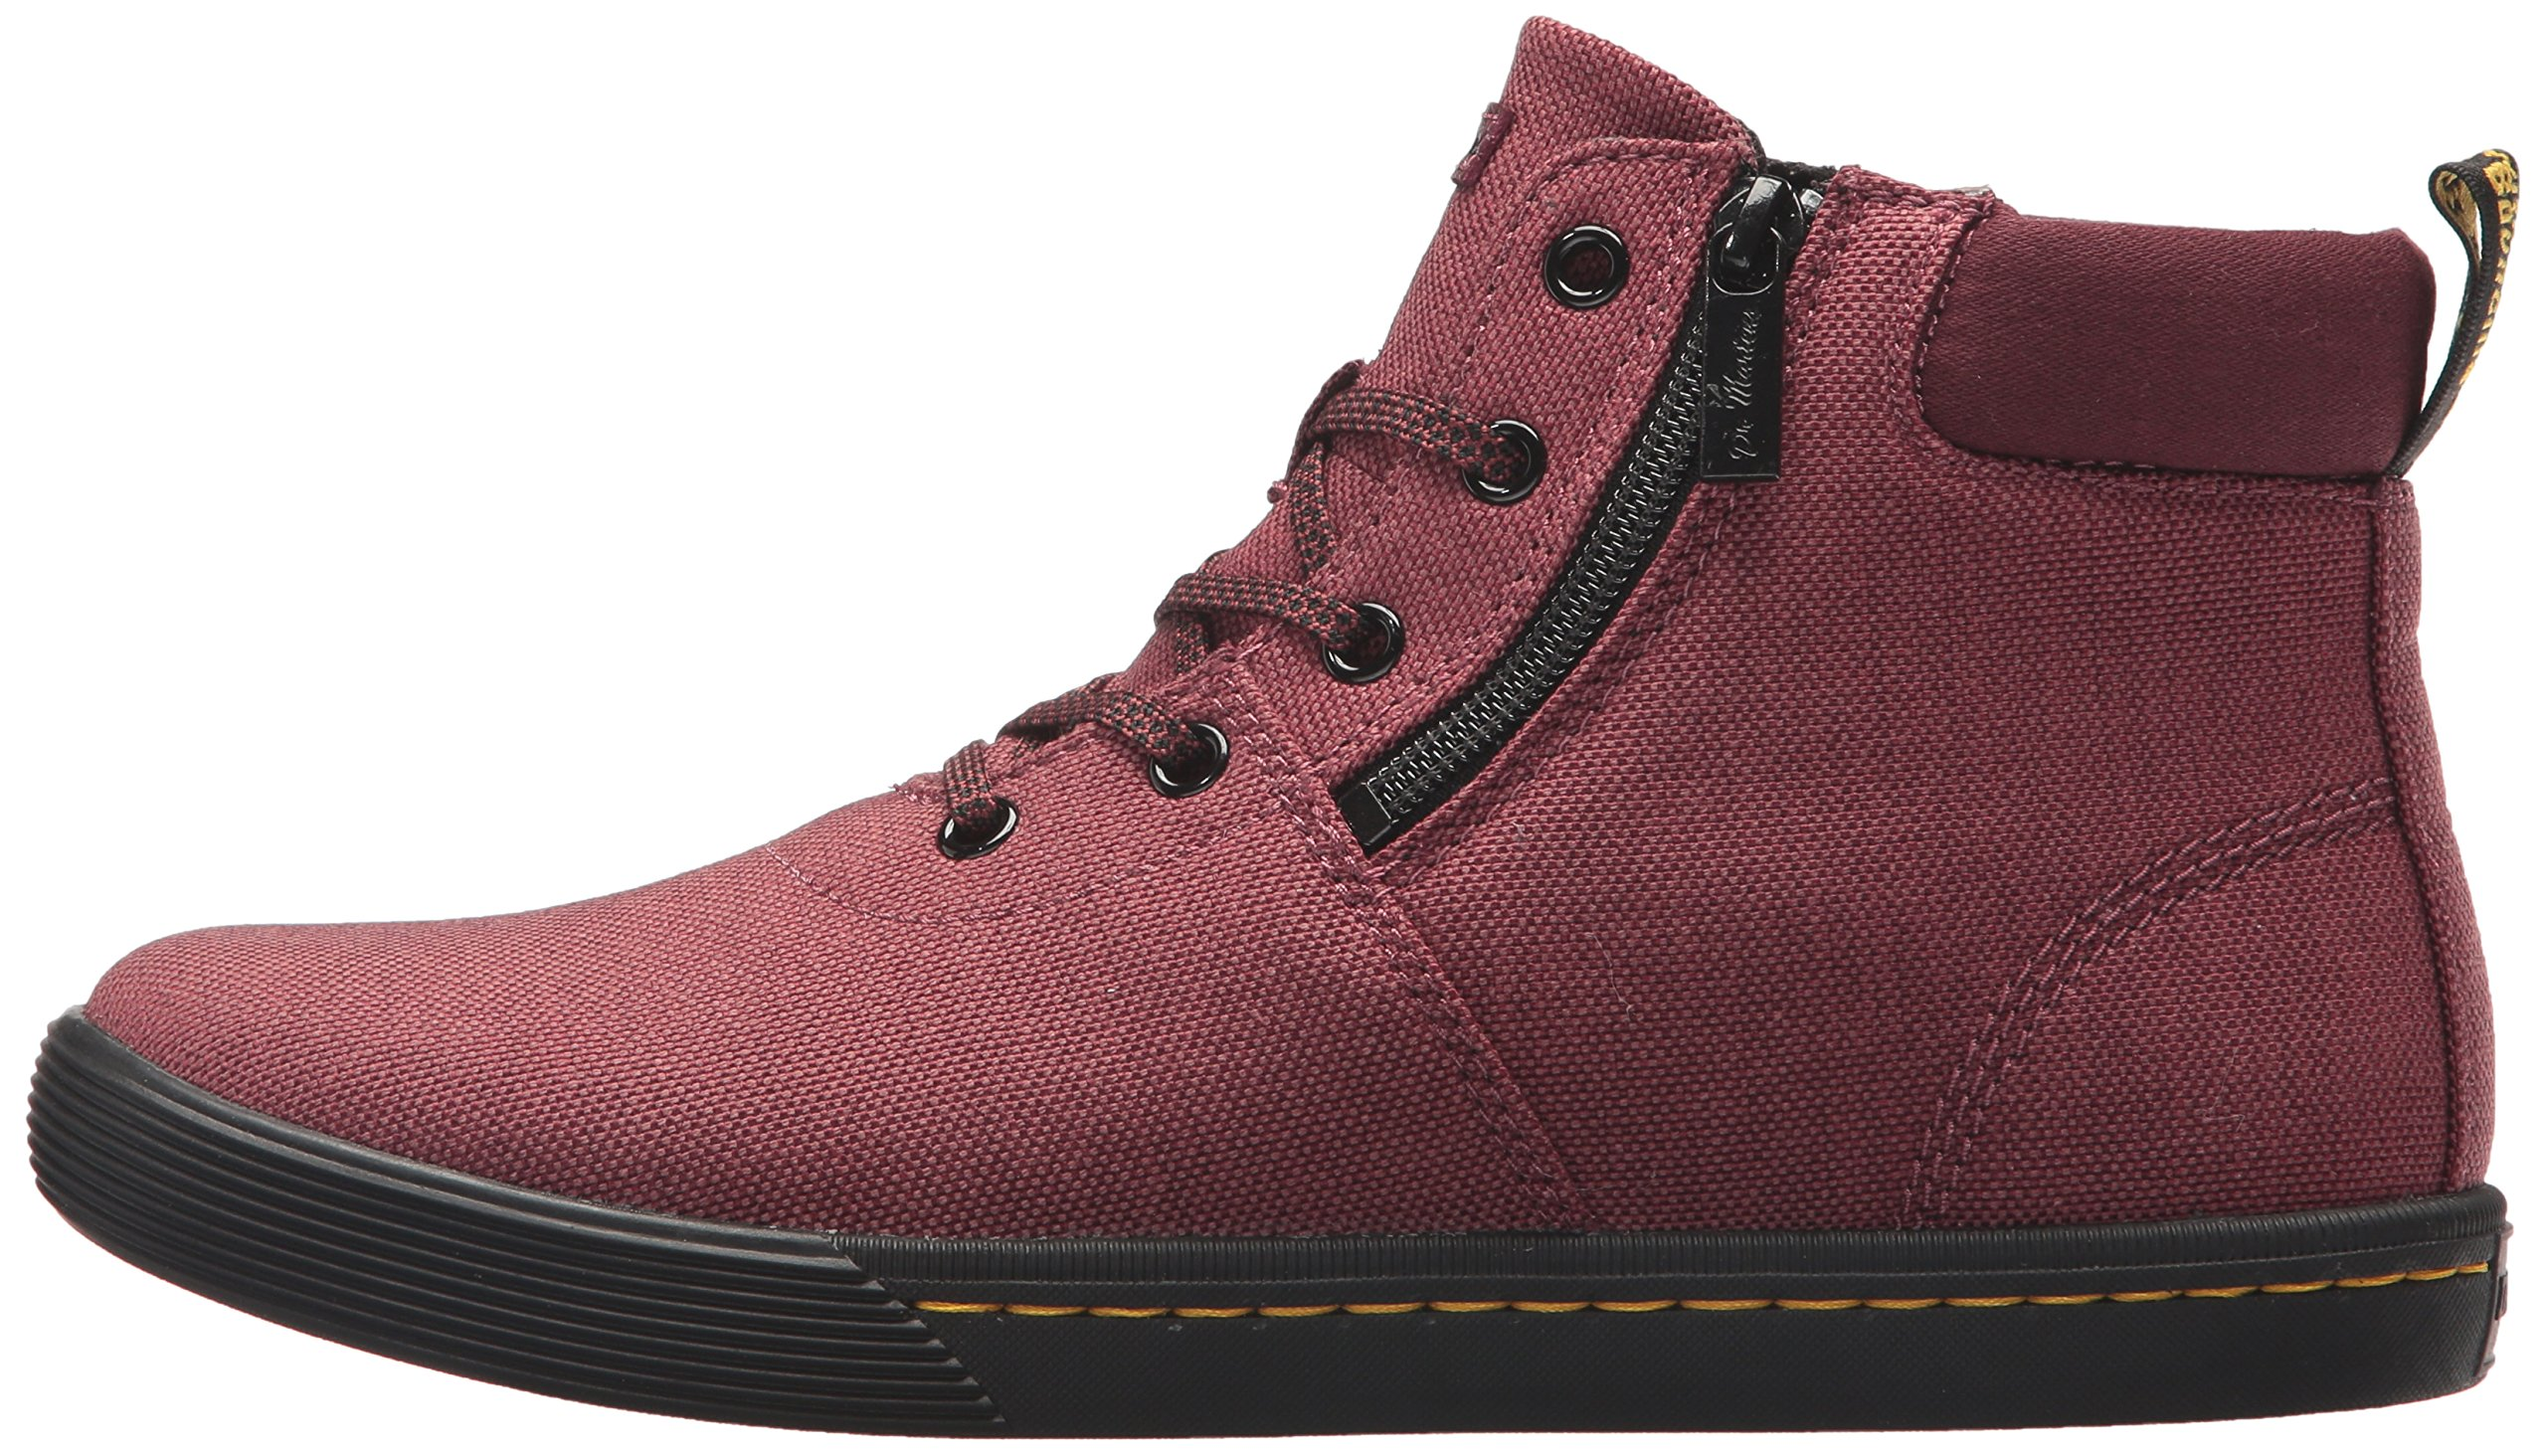 Dr. Martens Women's Maegley Fashion Boot, Cherry Red Woven Textile+Fine Canvas, 5 Medium UK (7 US) by Dr. Martens (Image #5)